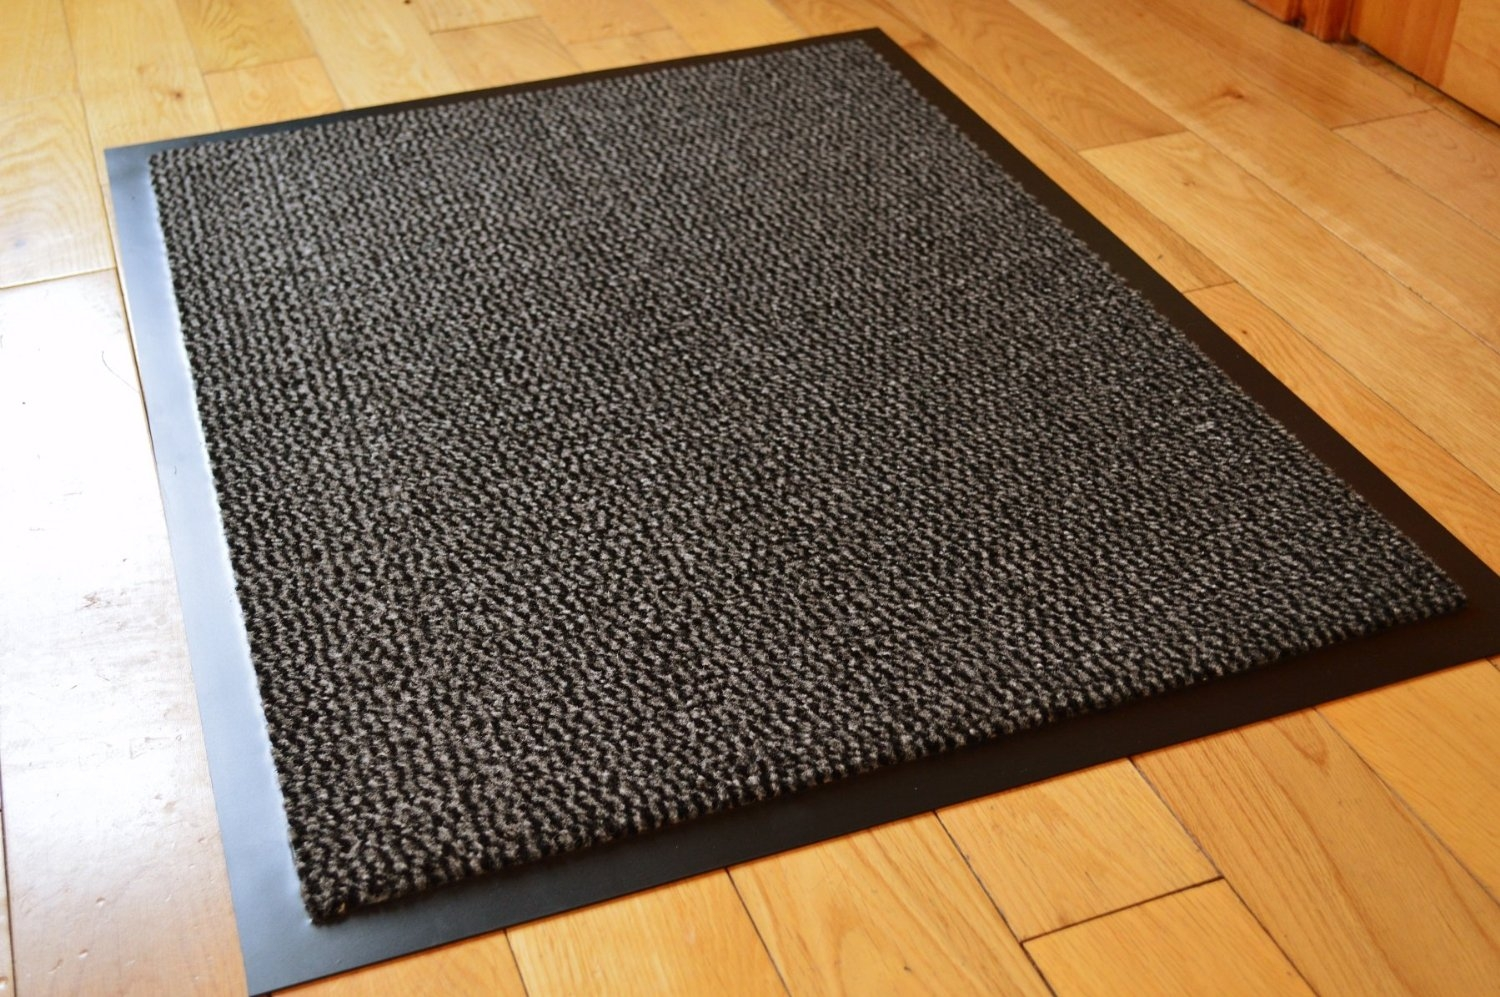 Kitchen Rugs Washable Non Slip Roselawnlutheran Inside Non Slip Rugs (Image 4 of 15)